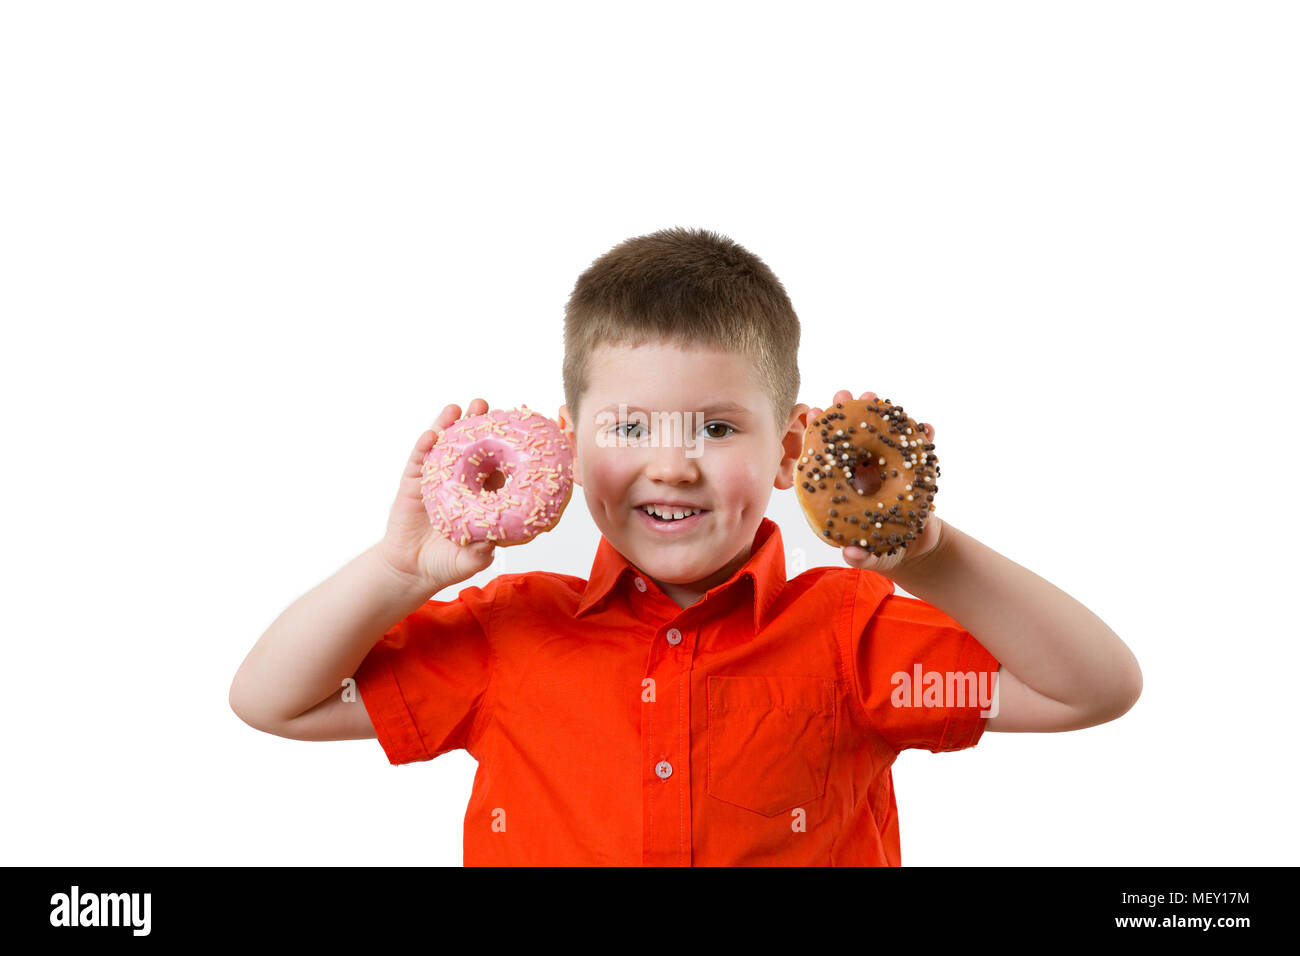 Little happy cute boy is eating donut on whte background wall. child is having fun with donut. Tasty food for kids. Funny time at home with sweet food. Bright kid. - Stock Image